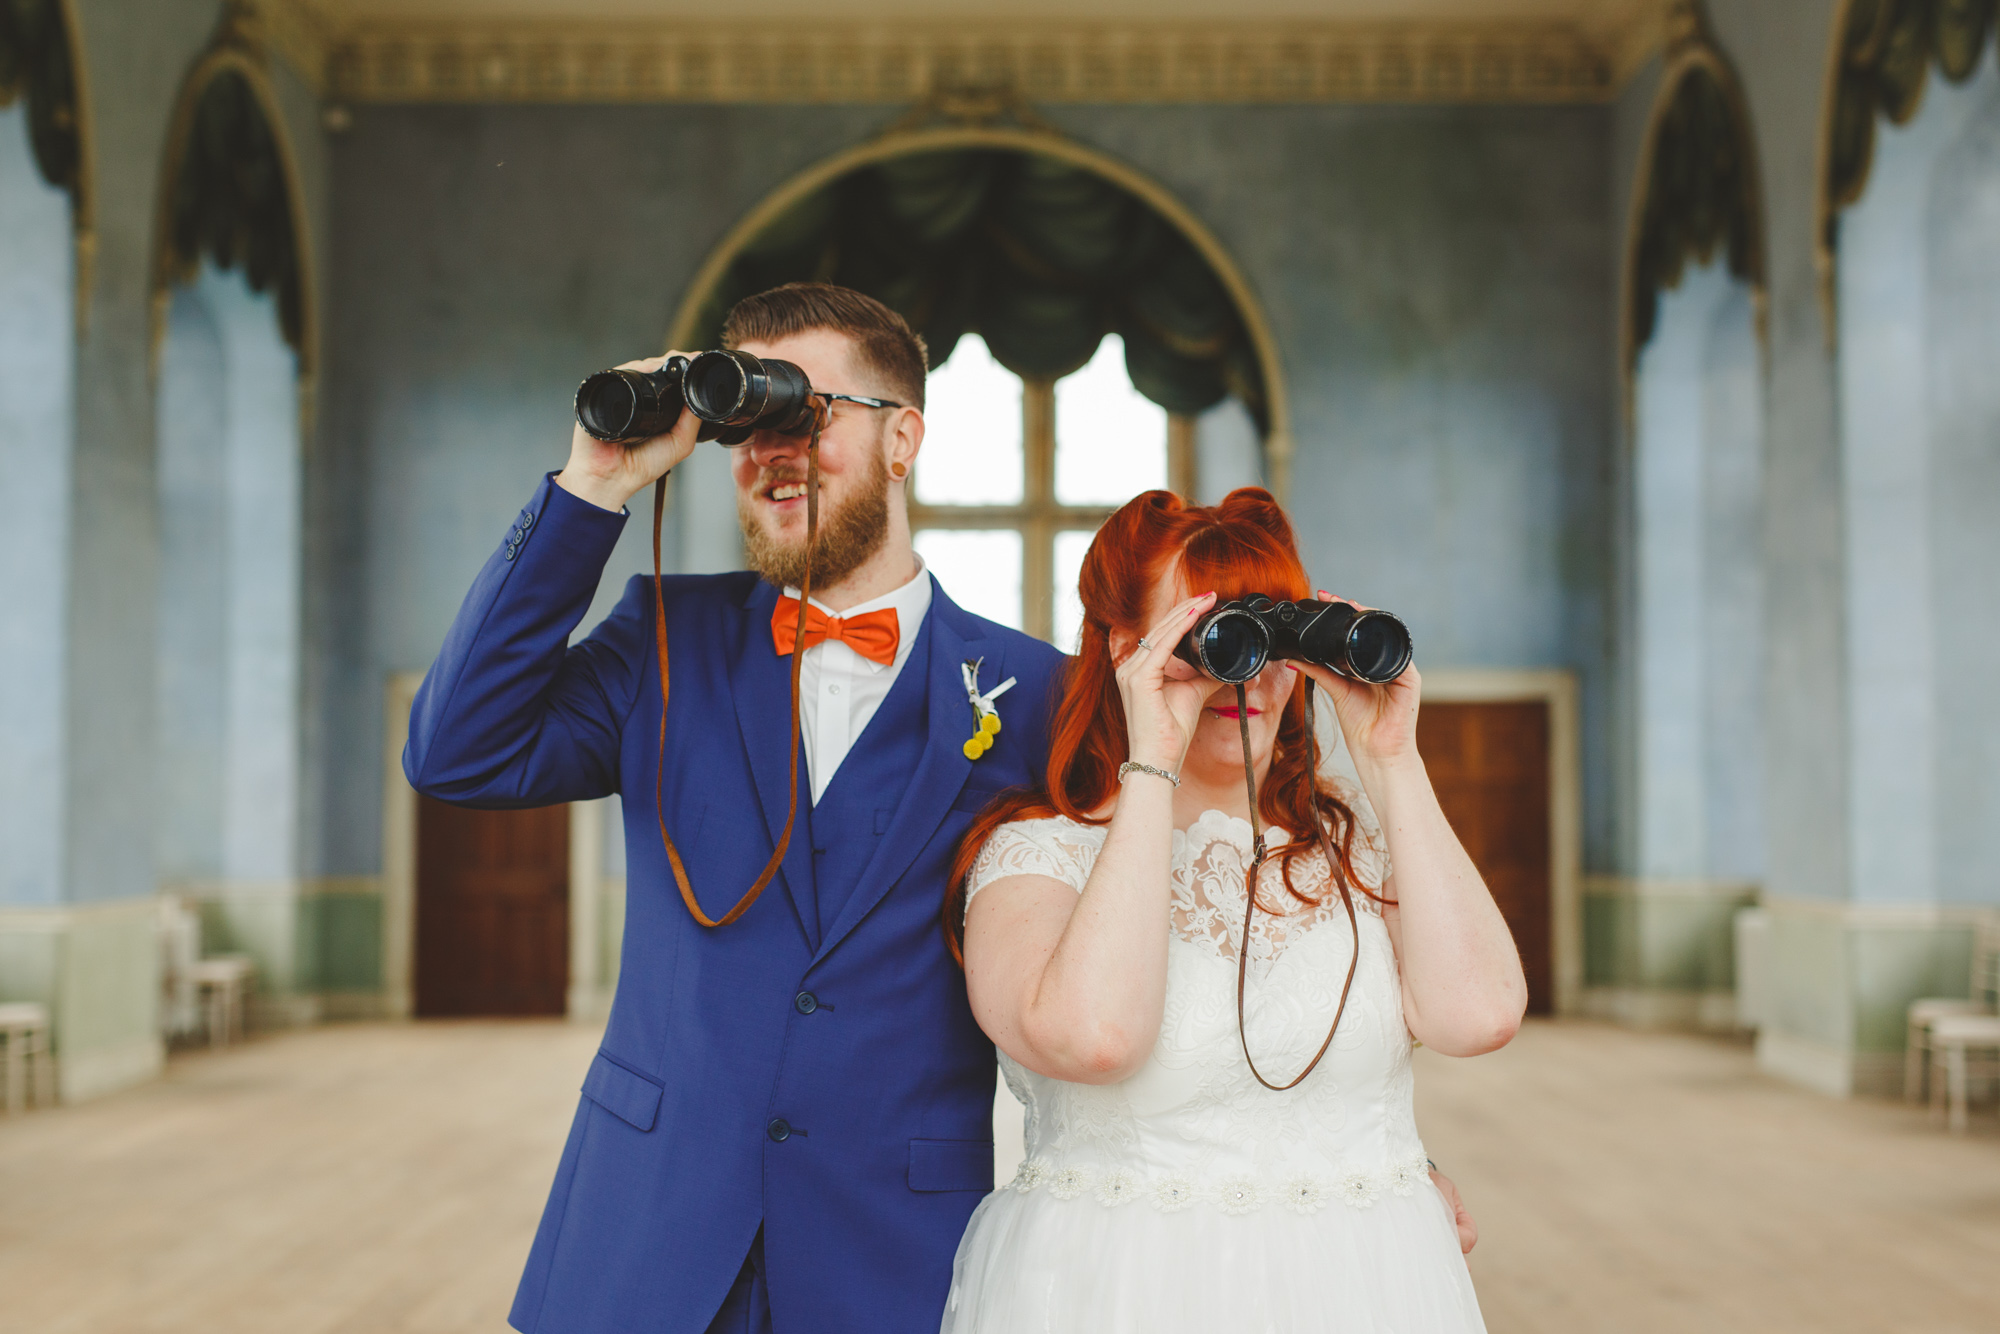 couple with binoculars, cute wedding photo, wes anderson style wedding photography in nottingham